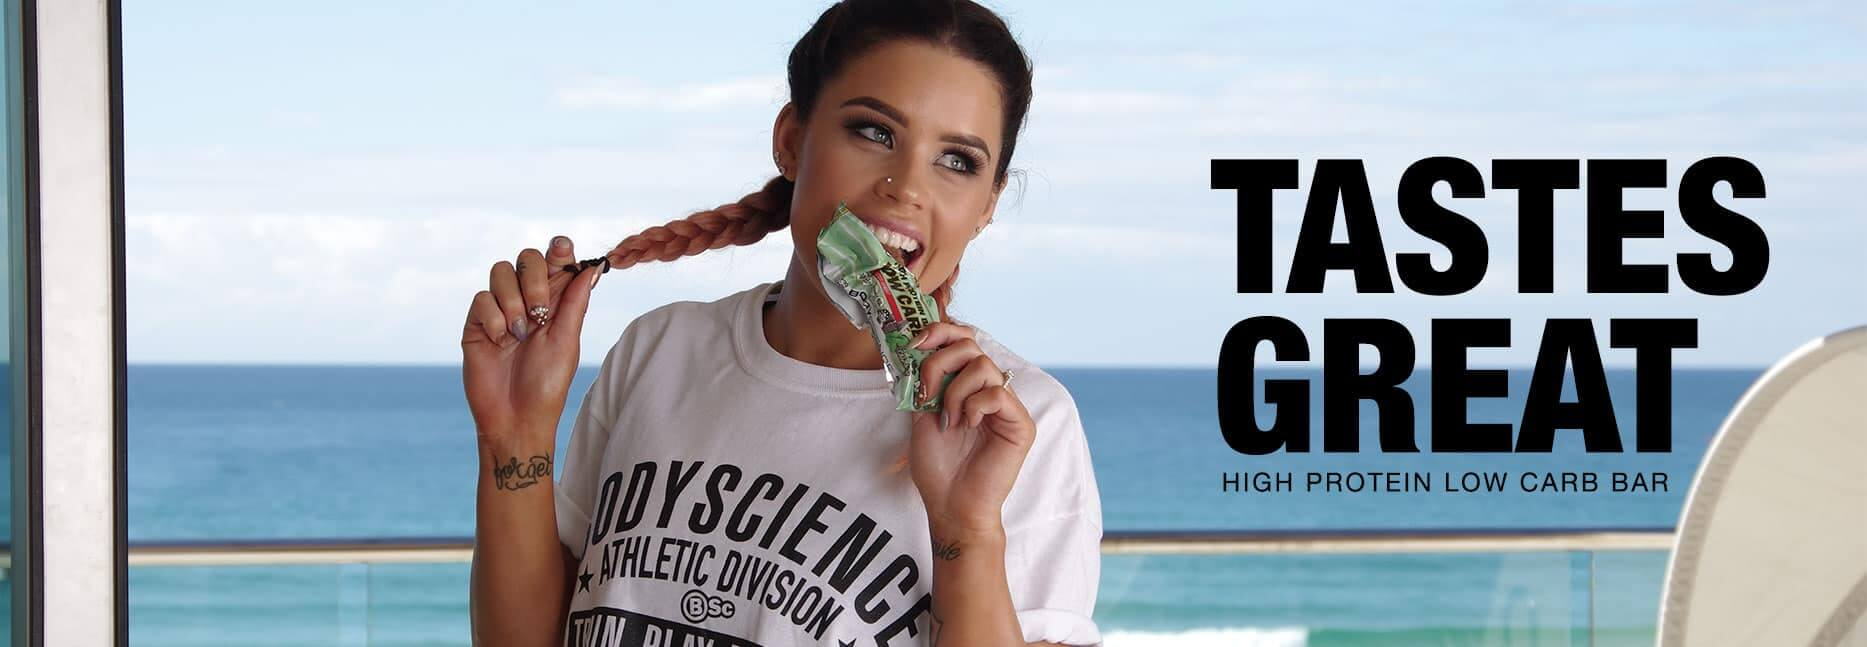 High Protein Low Carb Protein Bars By Body Science Banner